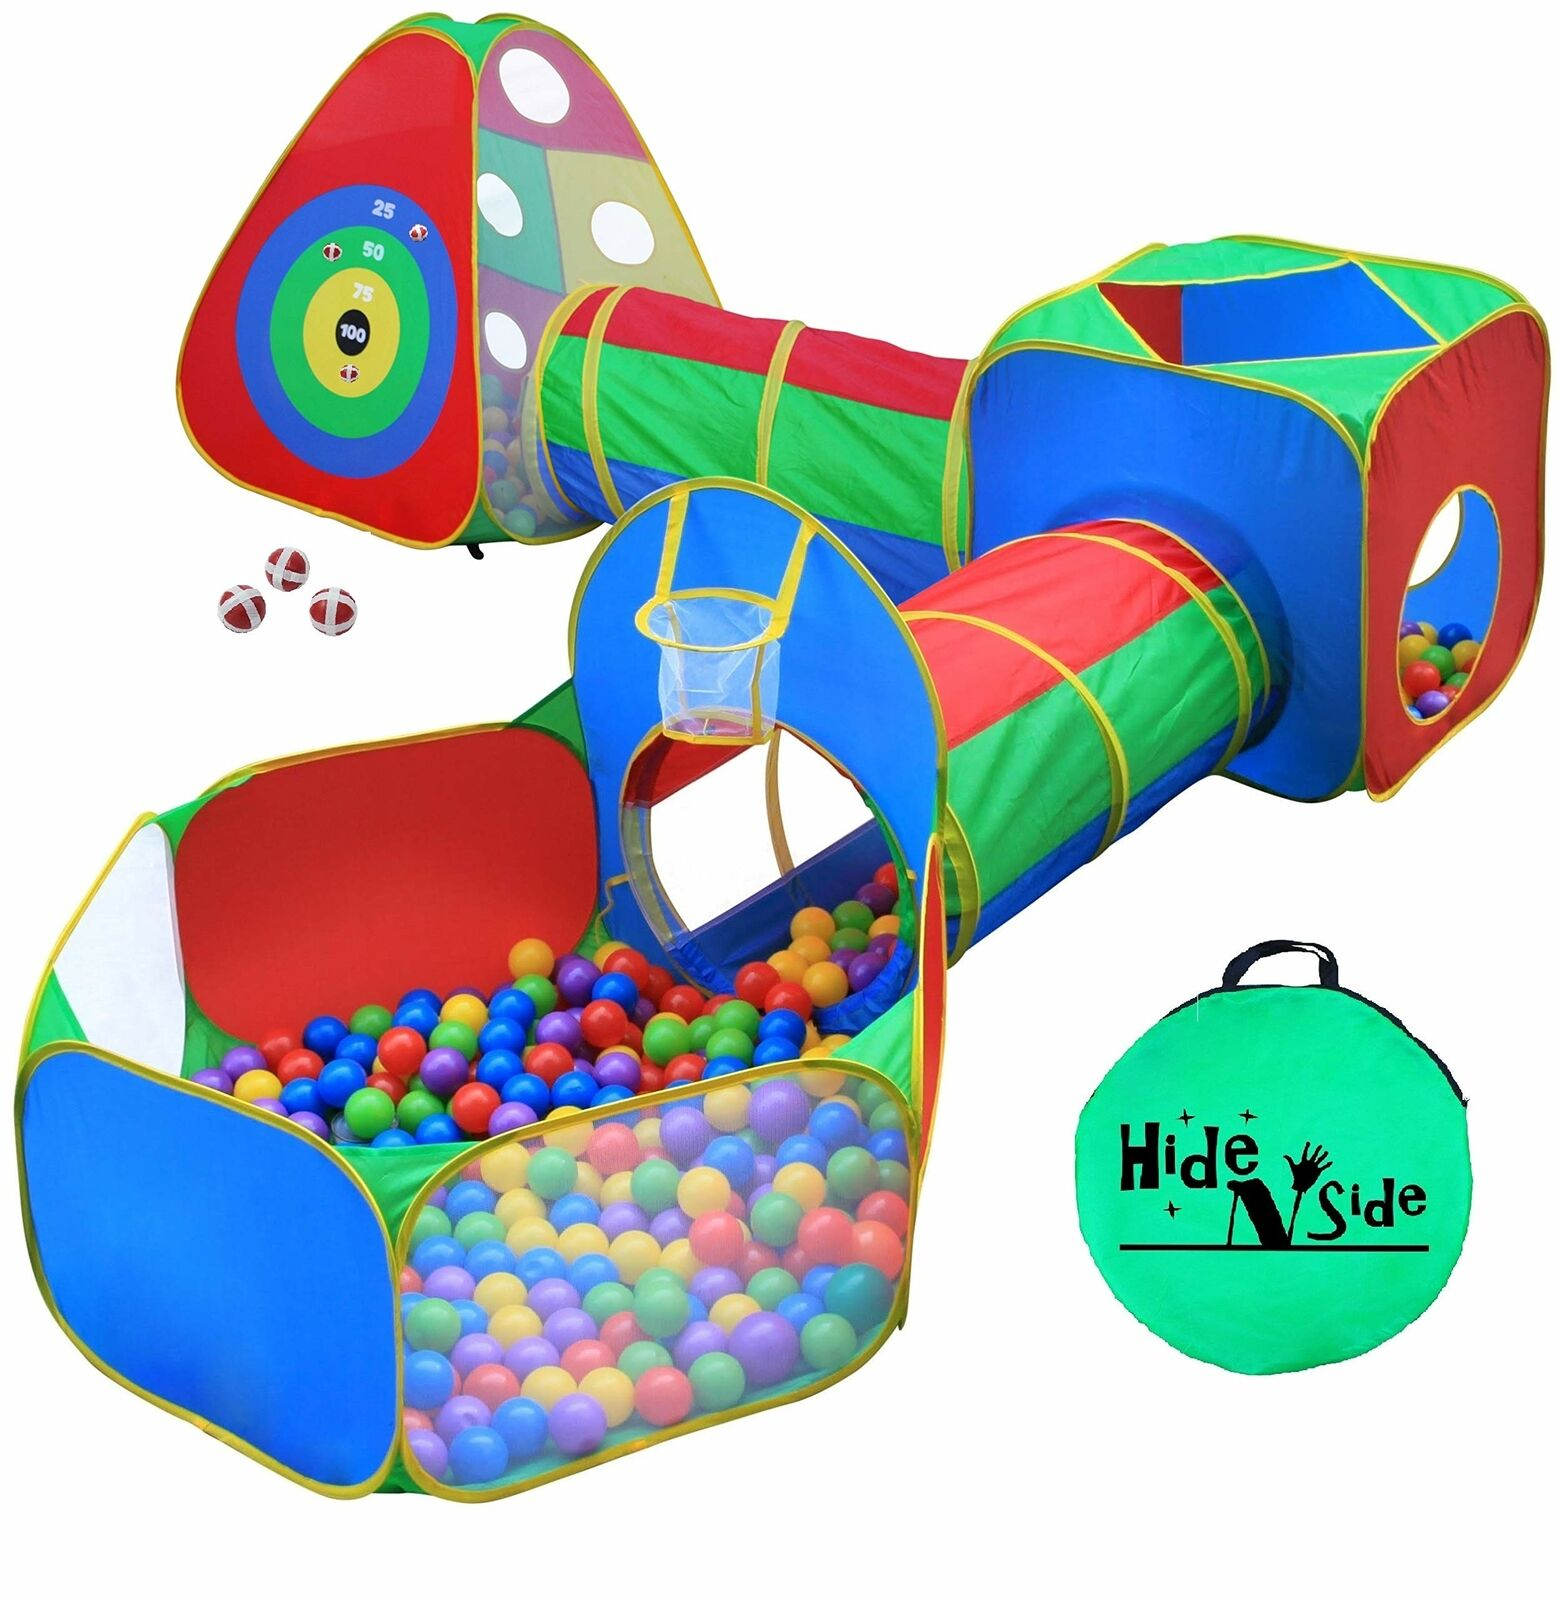 5pc ungar boll Pit Tents and Tunnels Toddler Jungle Gym Spela Tent med Spela Cr...